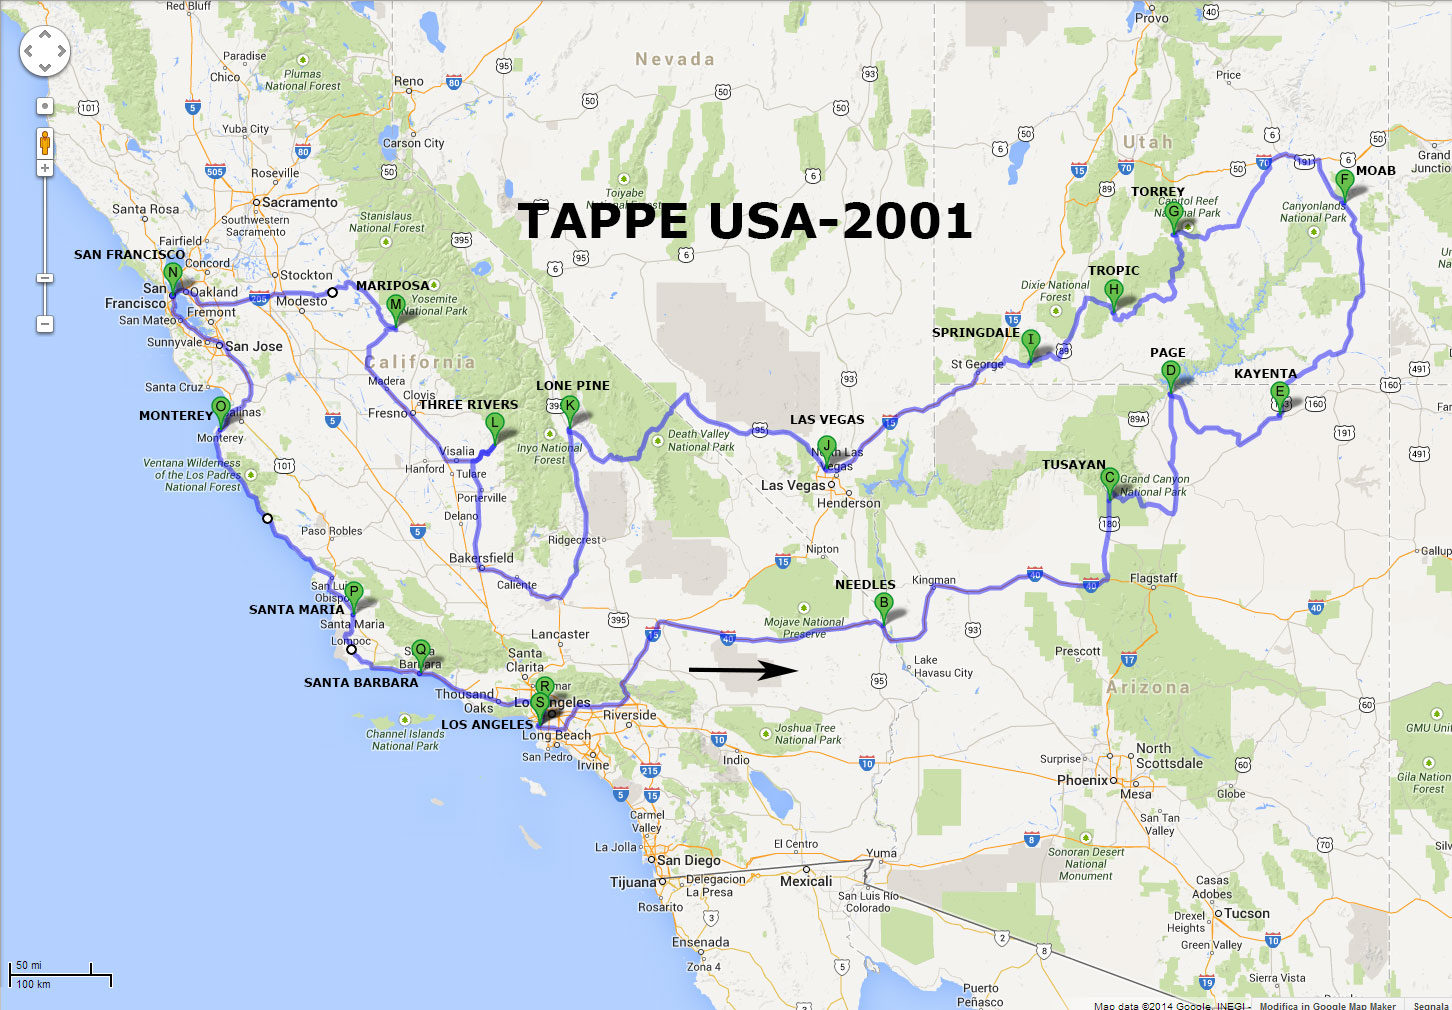 Tappe-usa-2001